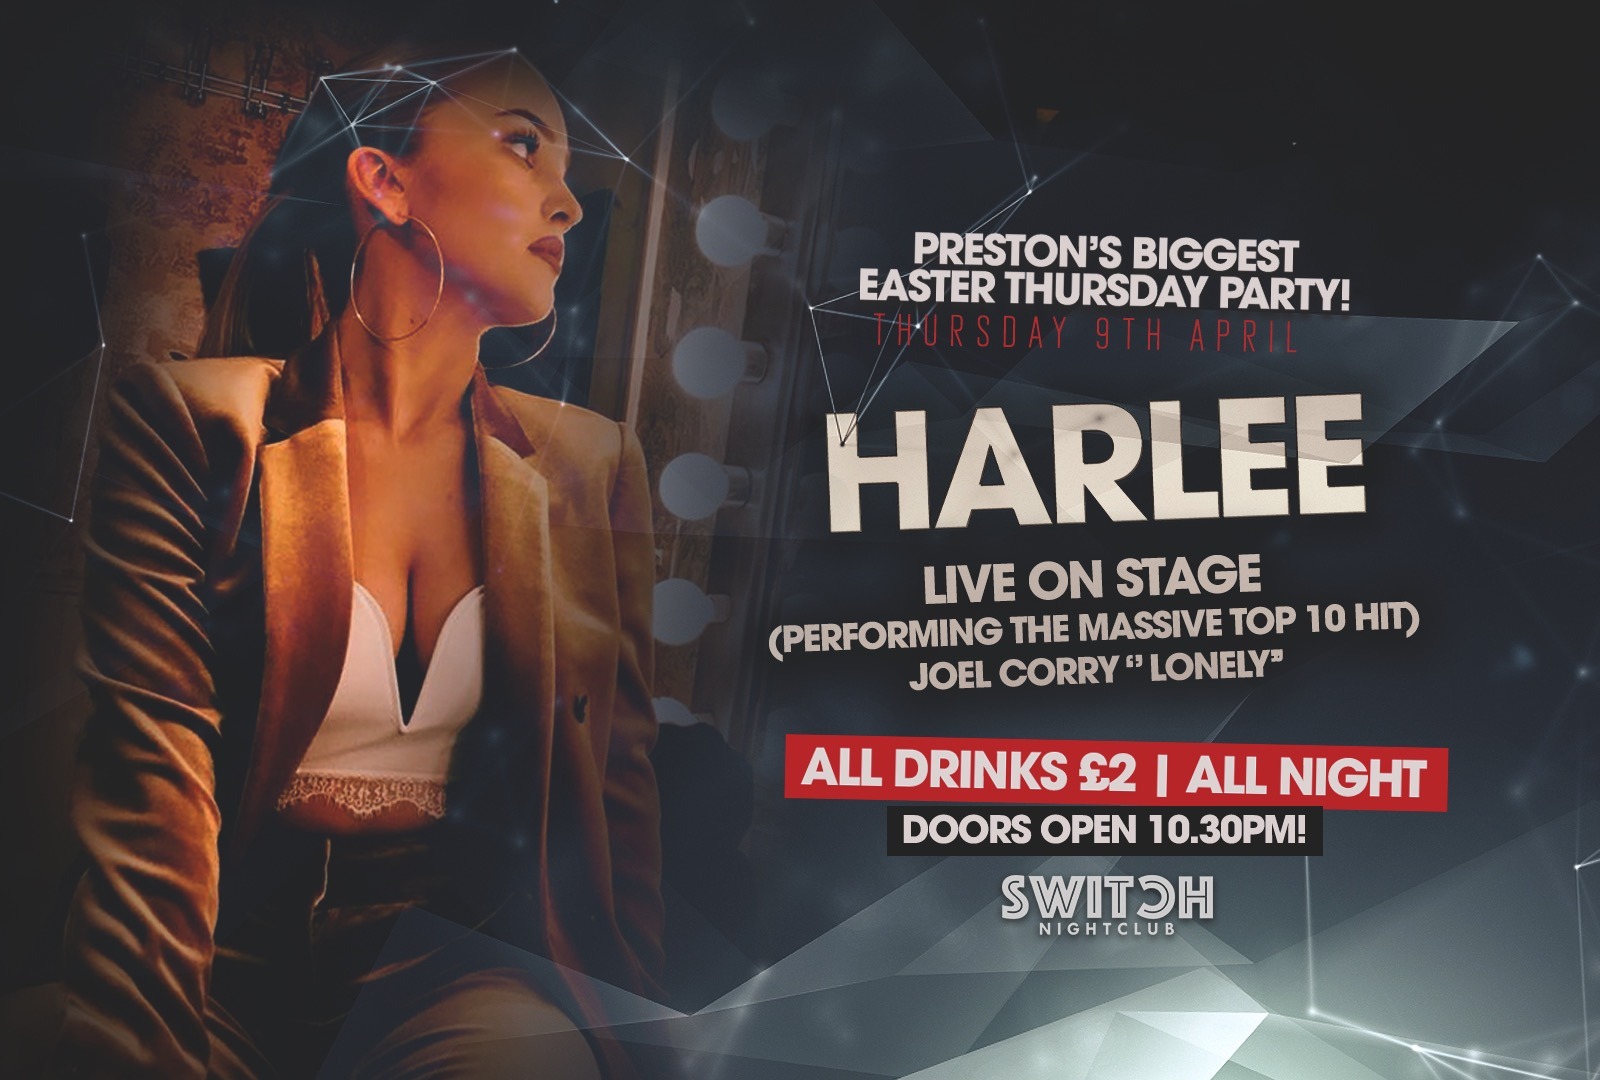 Preston's Biggest Easter Thursday Party!